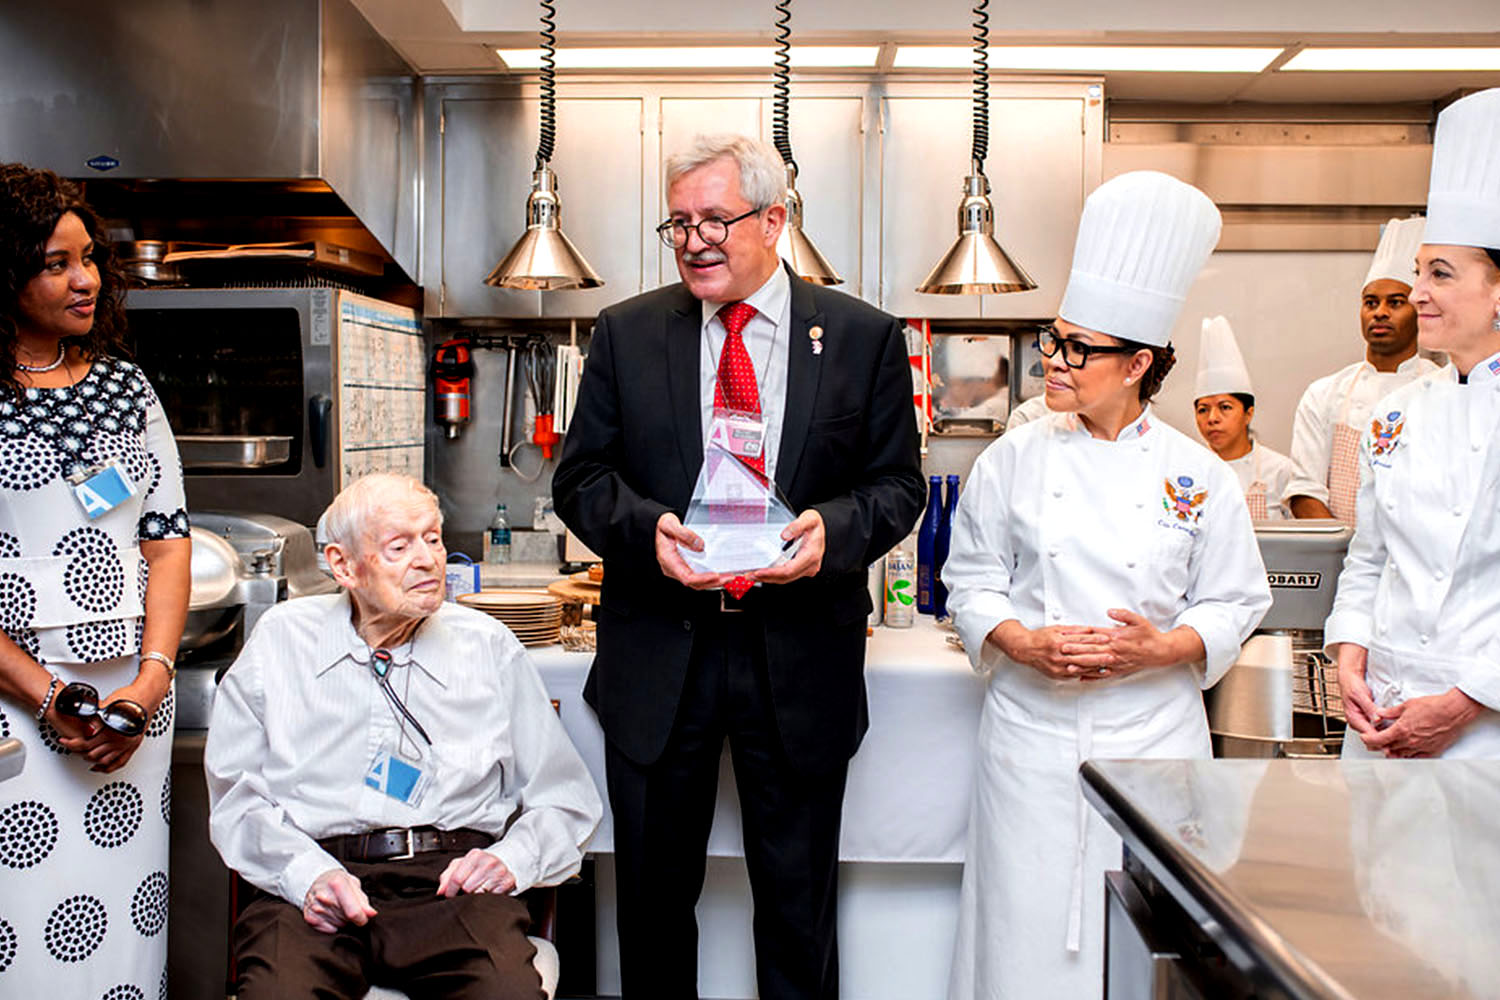 Swiss Chef Henry Haller receiving the 2018 Tell Award by Ambassador Martin Dahinden in the kitchens of the White House in Washington, D.C.  © Embassy of Switzerland